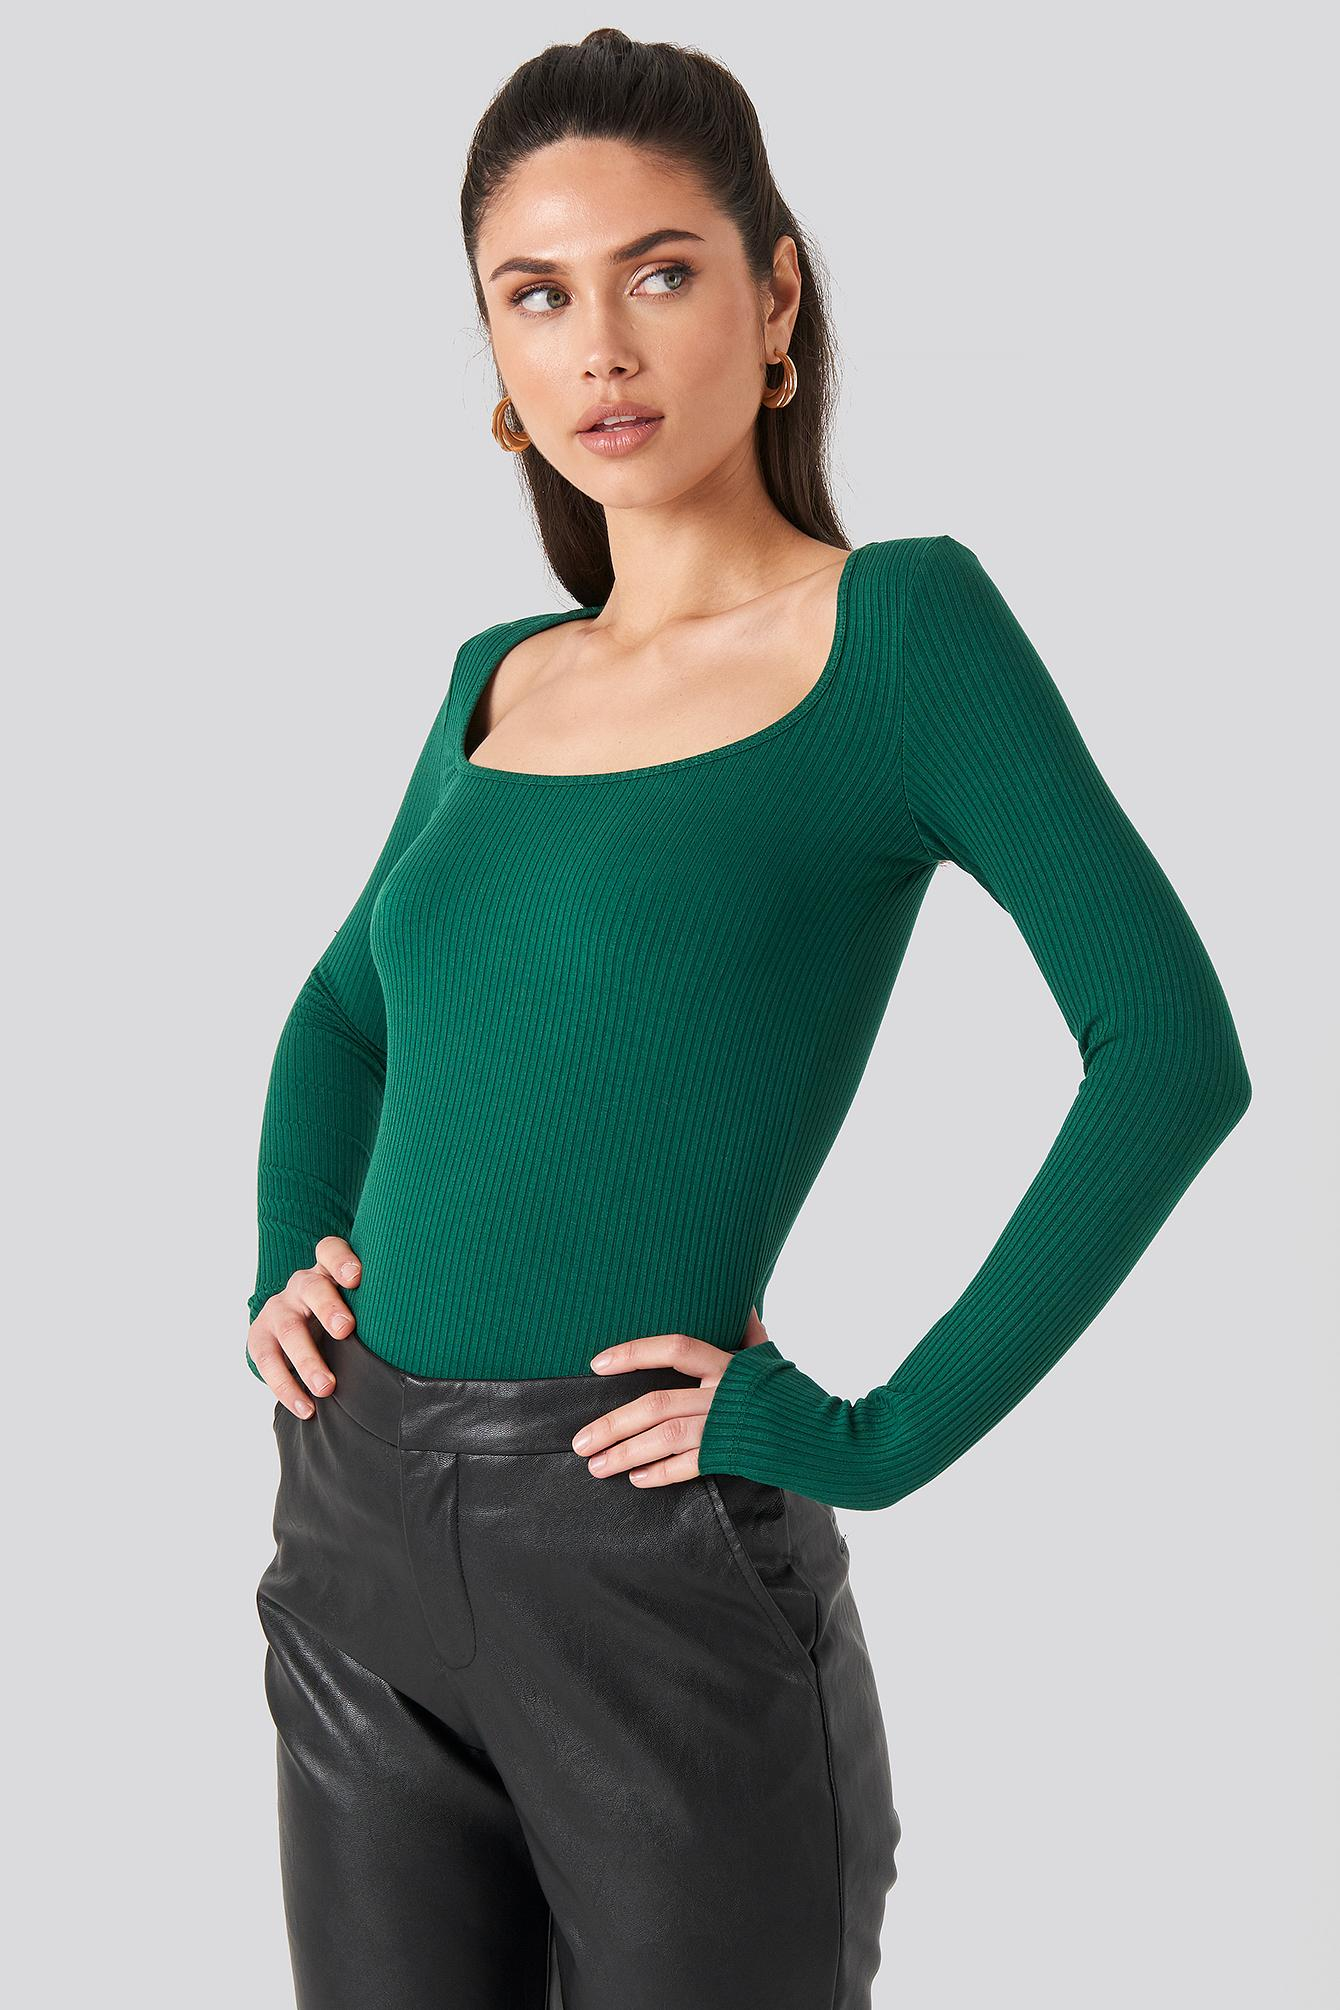 Banned Apparel Tropical Green Fine Knit Viscose Long Sleeved Cropped Bolero Top